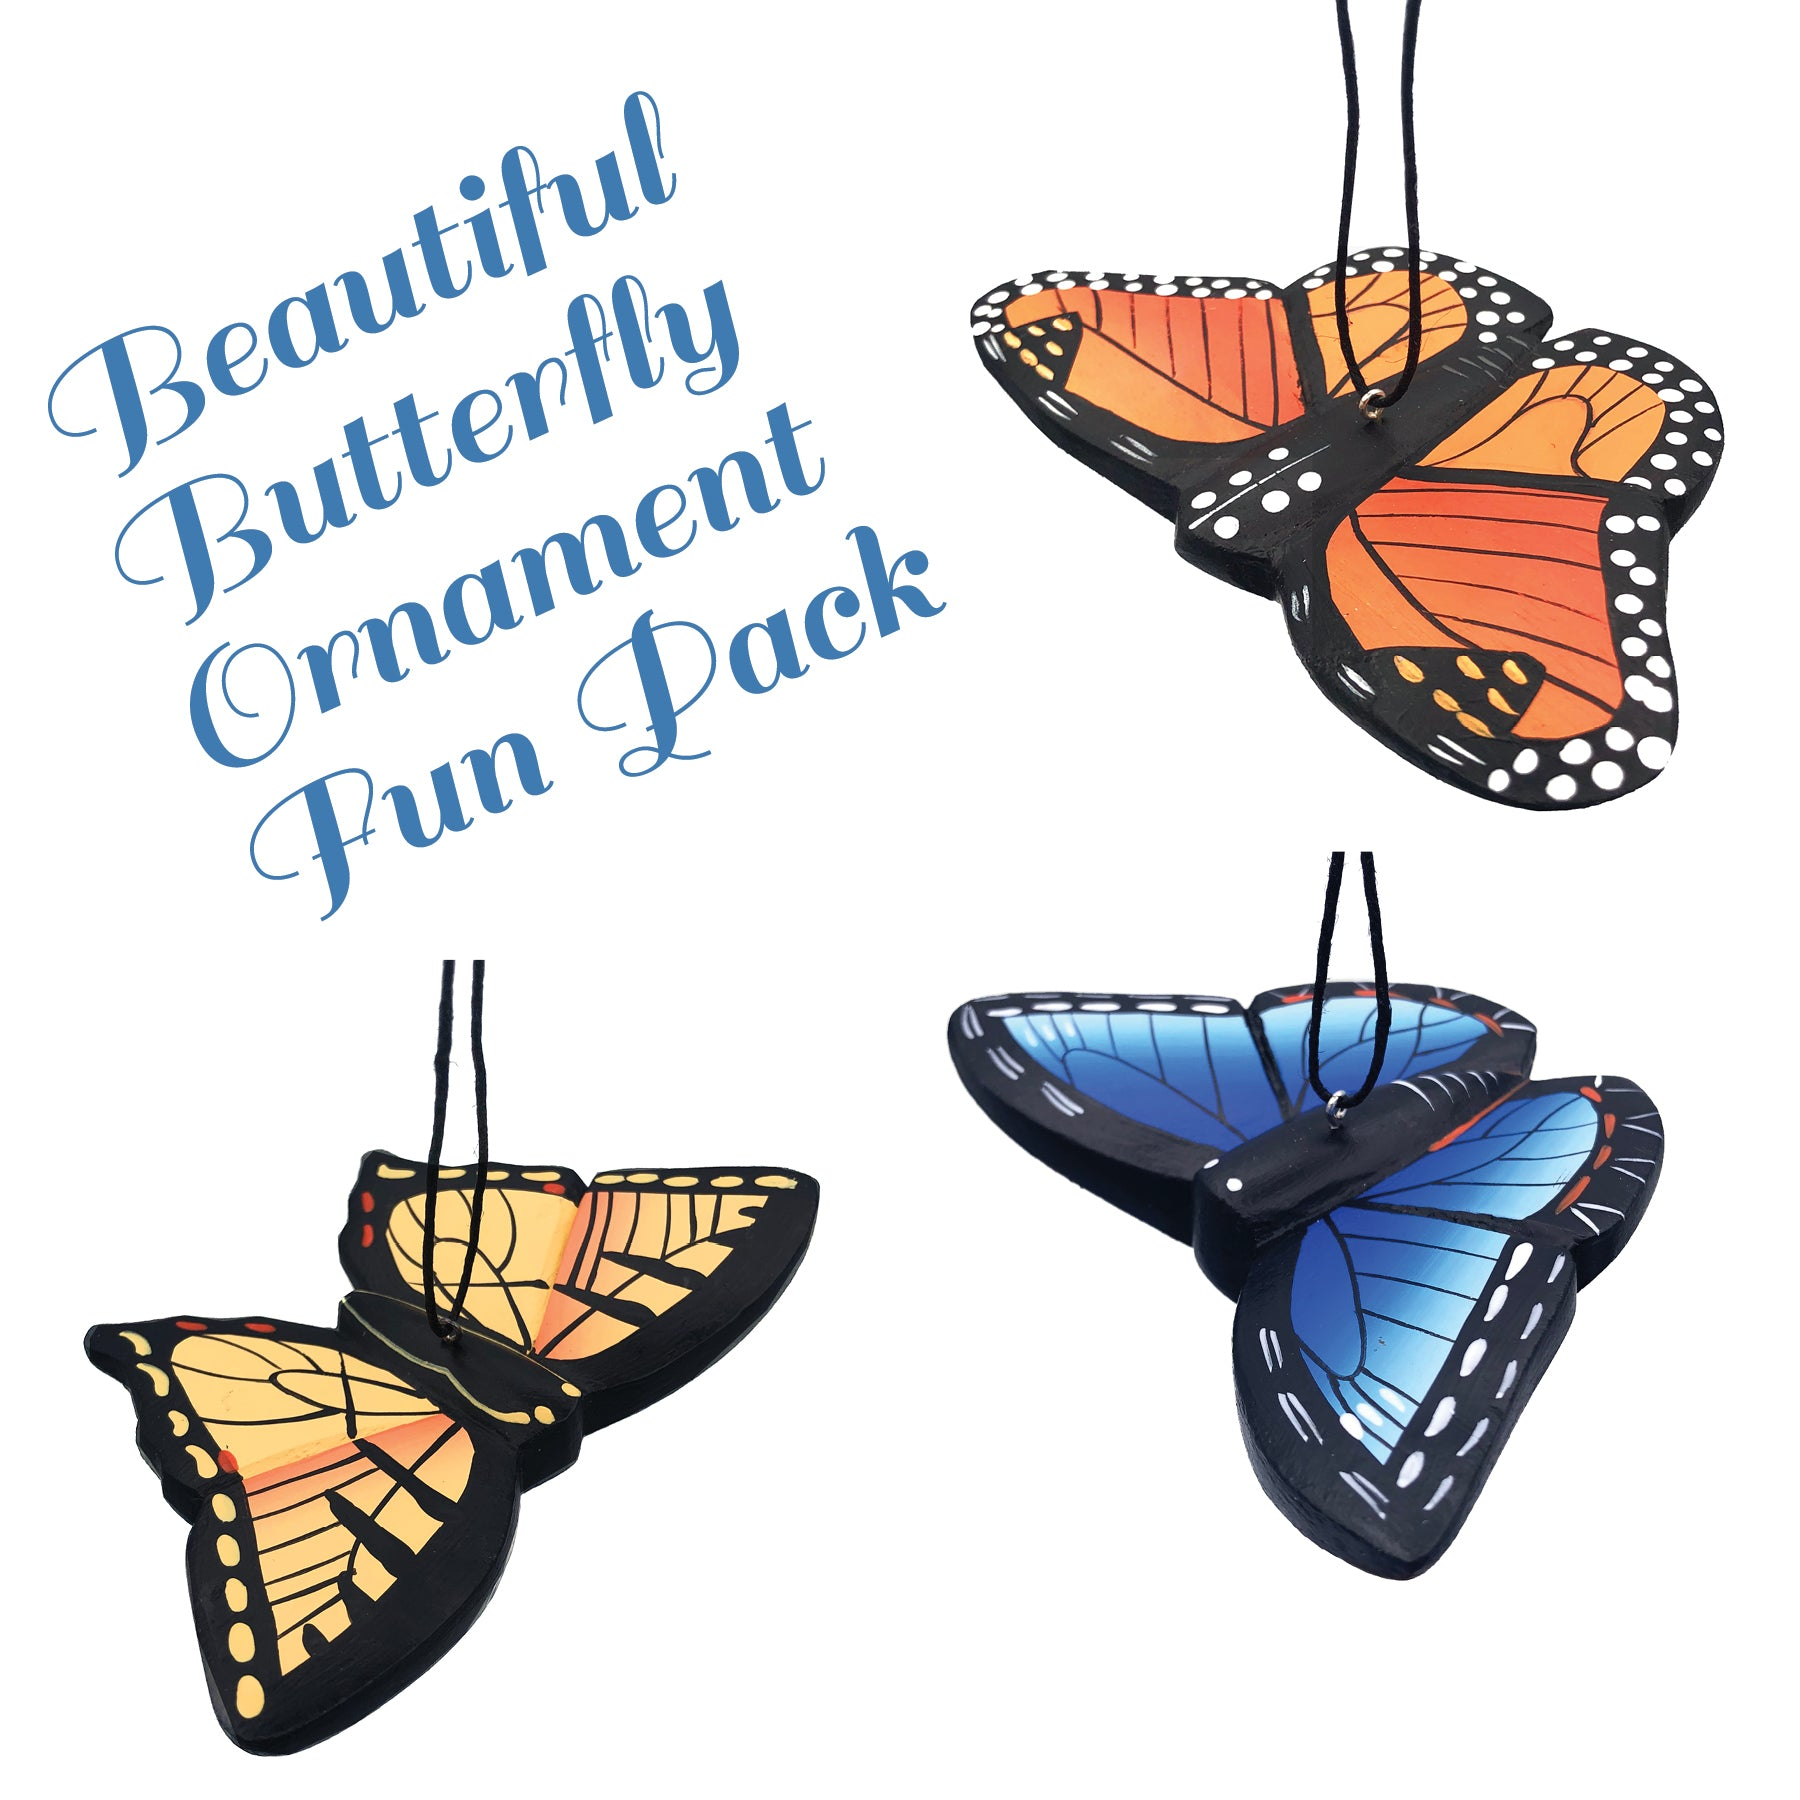 Beautiful Butterfly Ornament Fun Pack